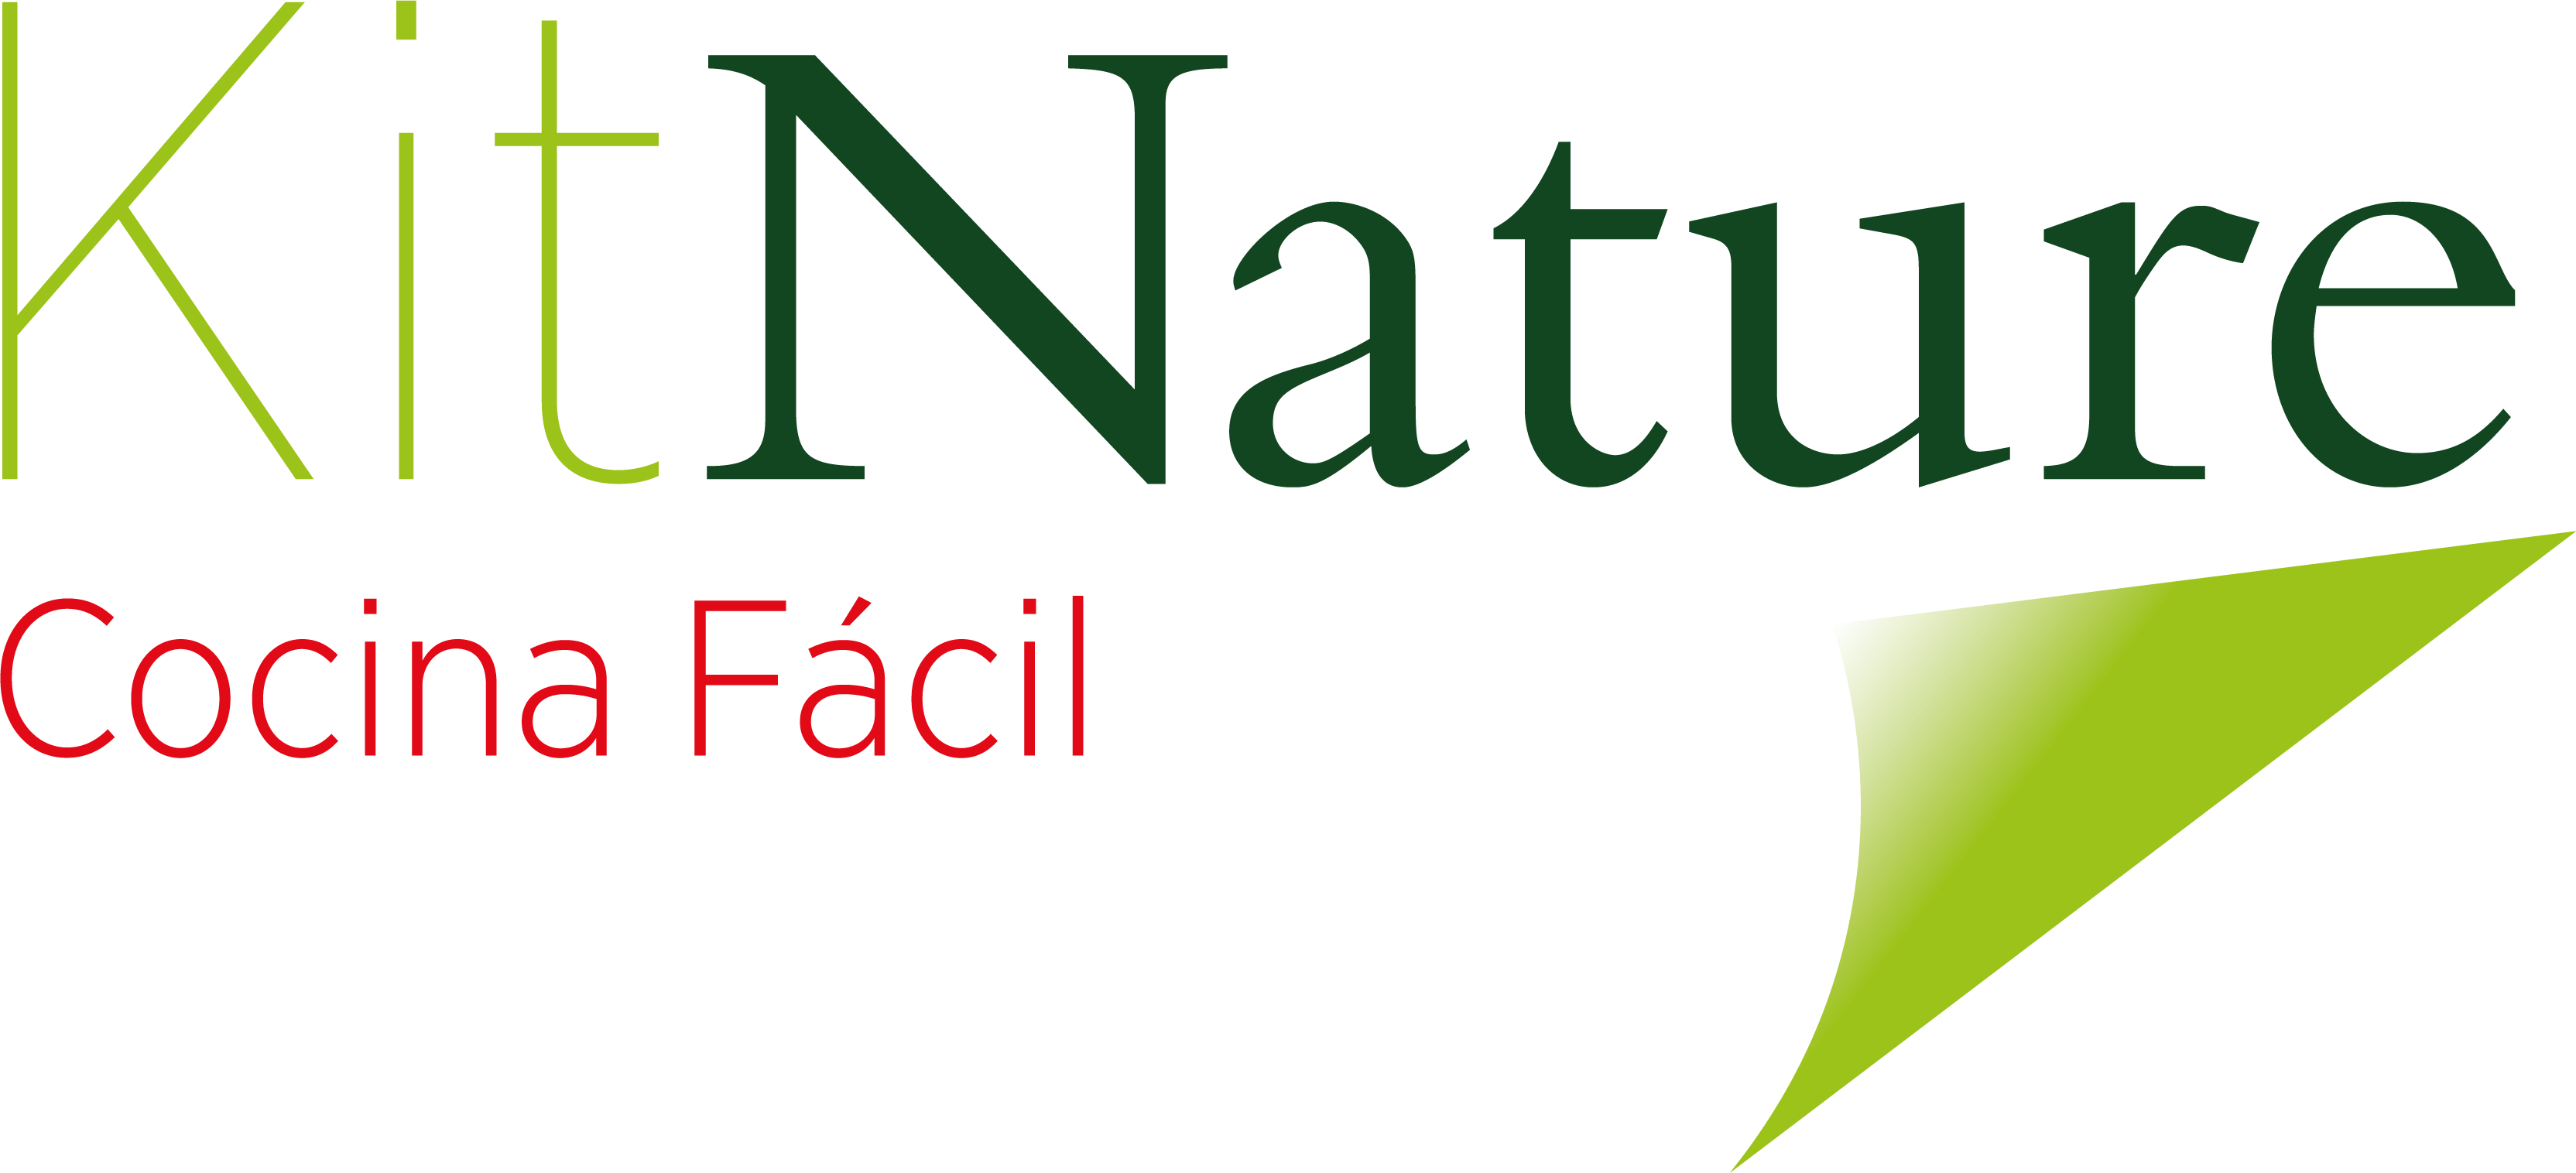 logo-kit-nature